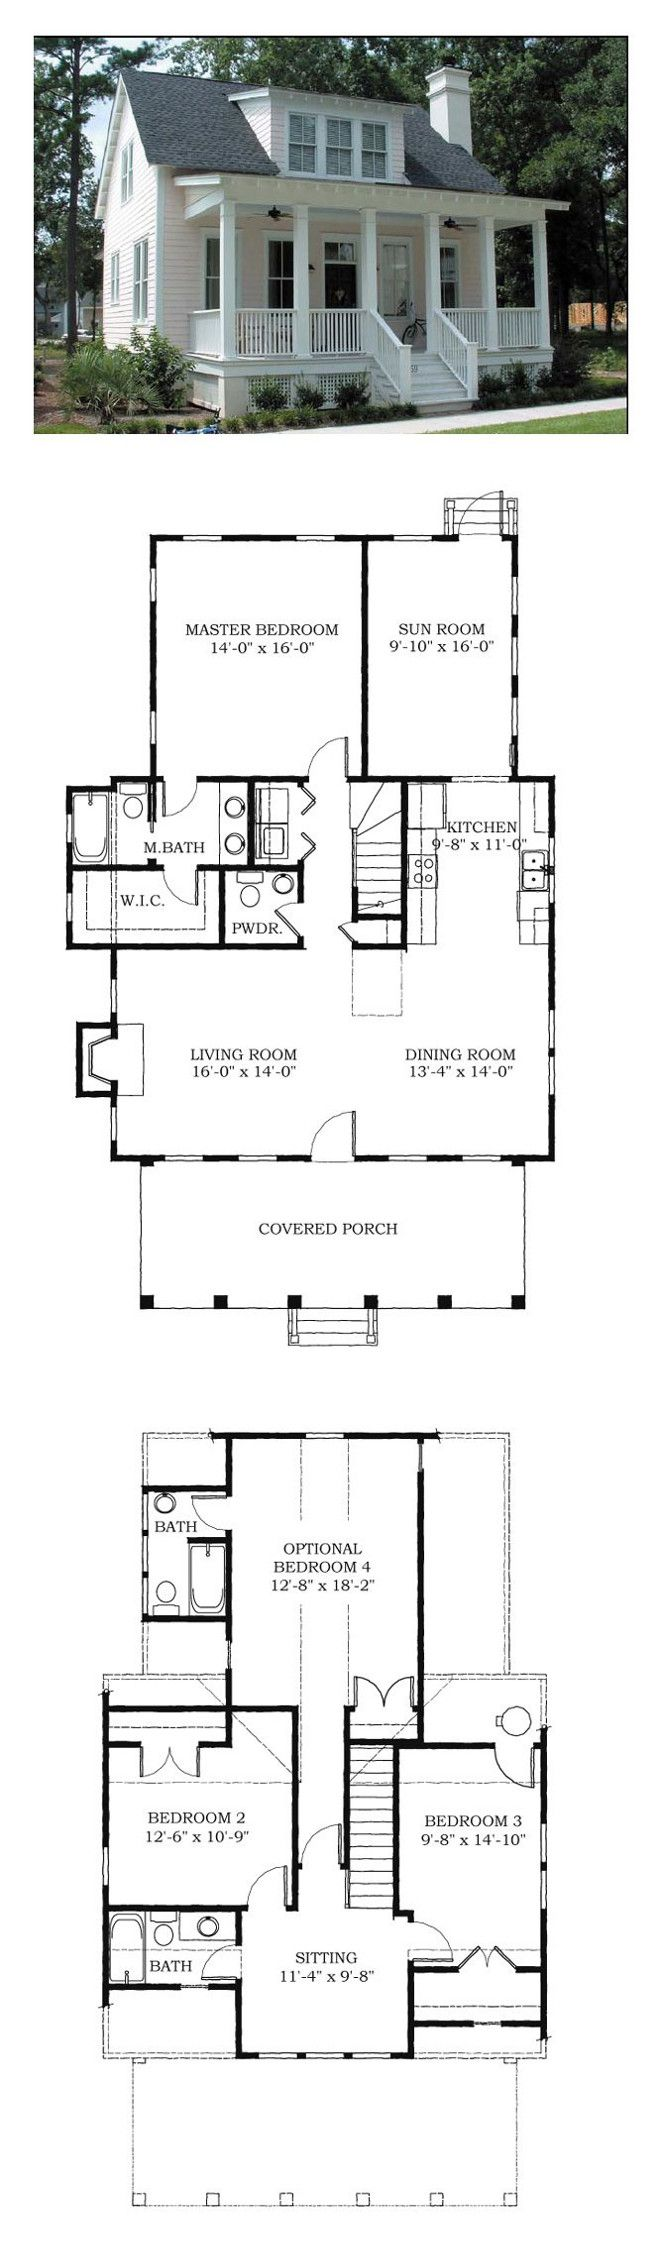 Best 25+ Bungalow Floor Plans Ideas Only On Pinterest | Bungalow House Plans,  House Blueprints And Small Home Plans Part 63